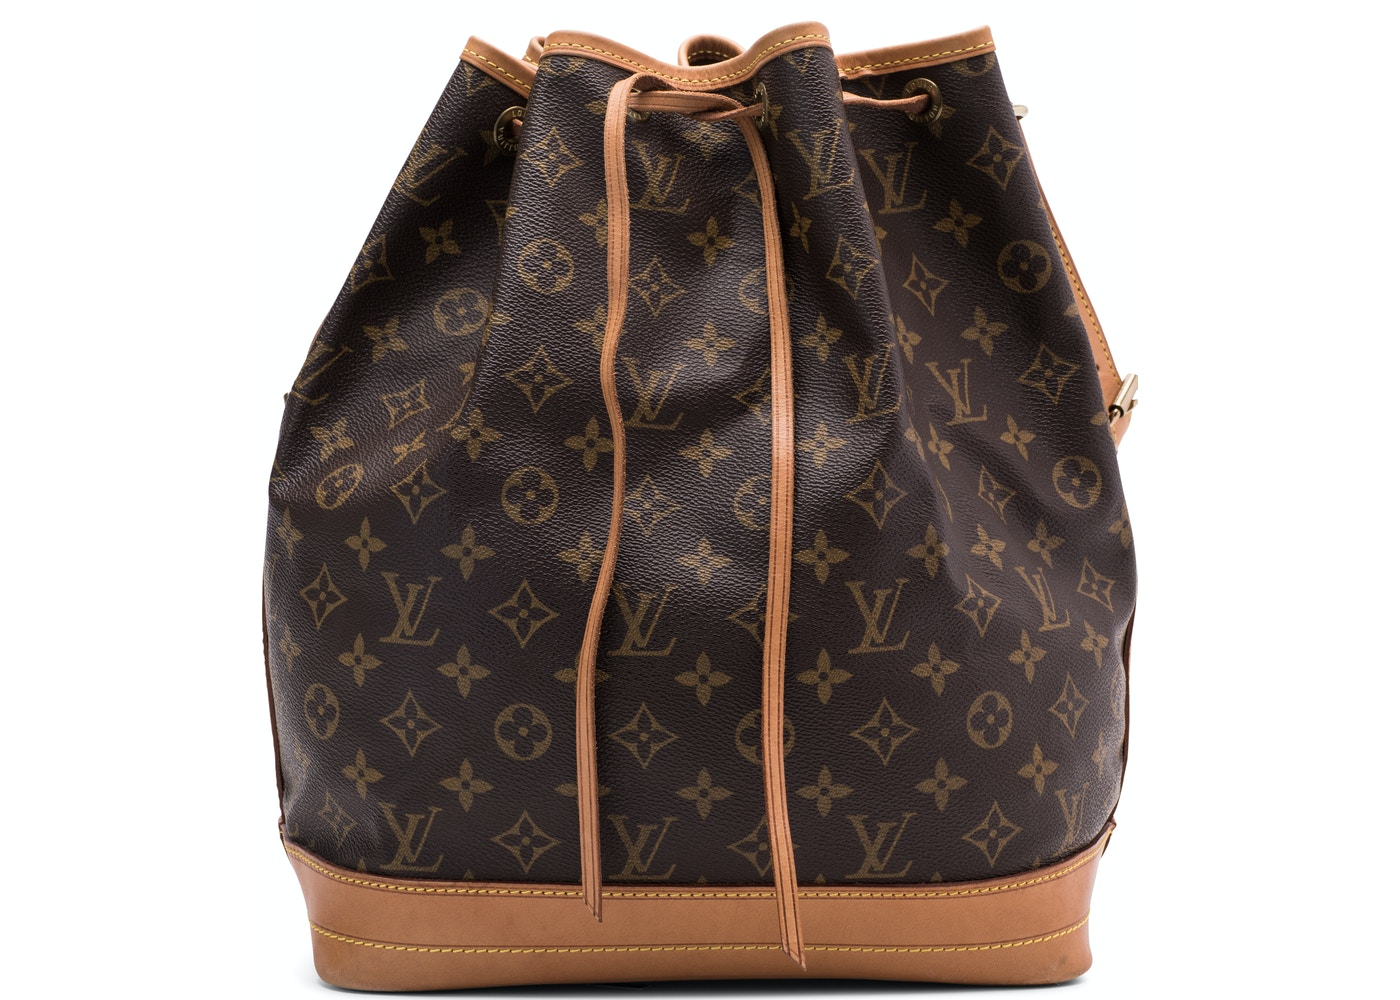 8ebf0fc61 Louis Vuitton Noe Monogram GM Brown. Monogram GM Brown